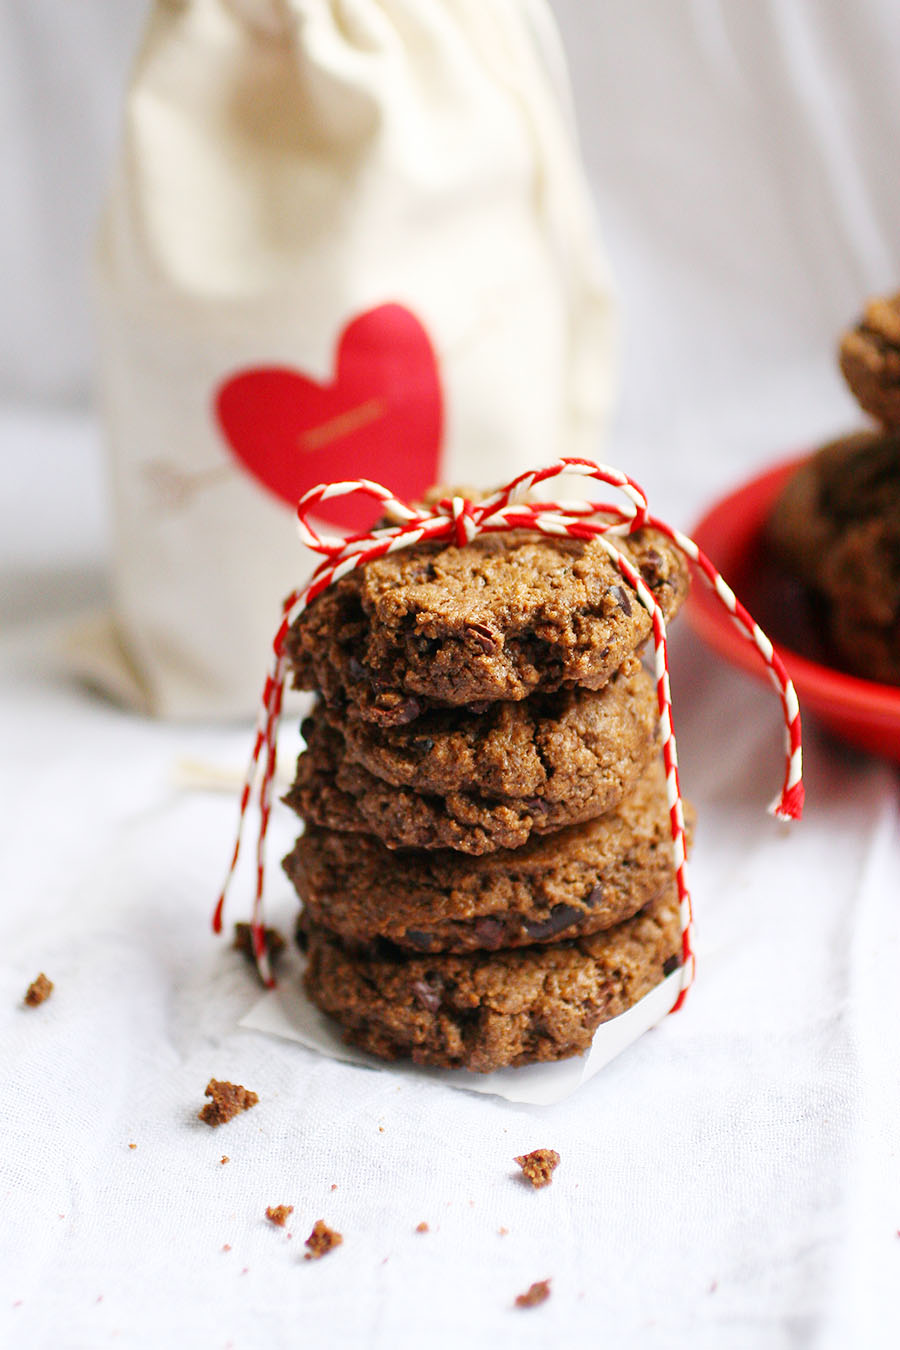 A stack of cookies tied with red and white bakers string sitting on a white table with a red bowl of cookies and a cream bag with a red heart in the background